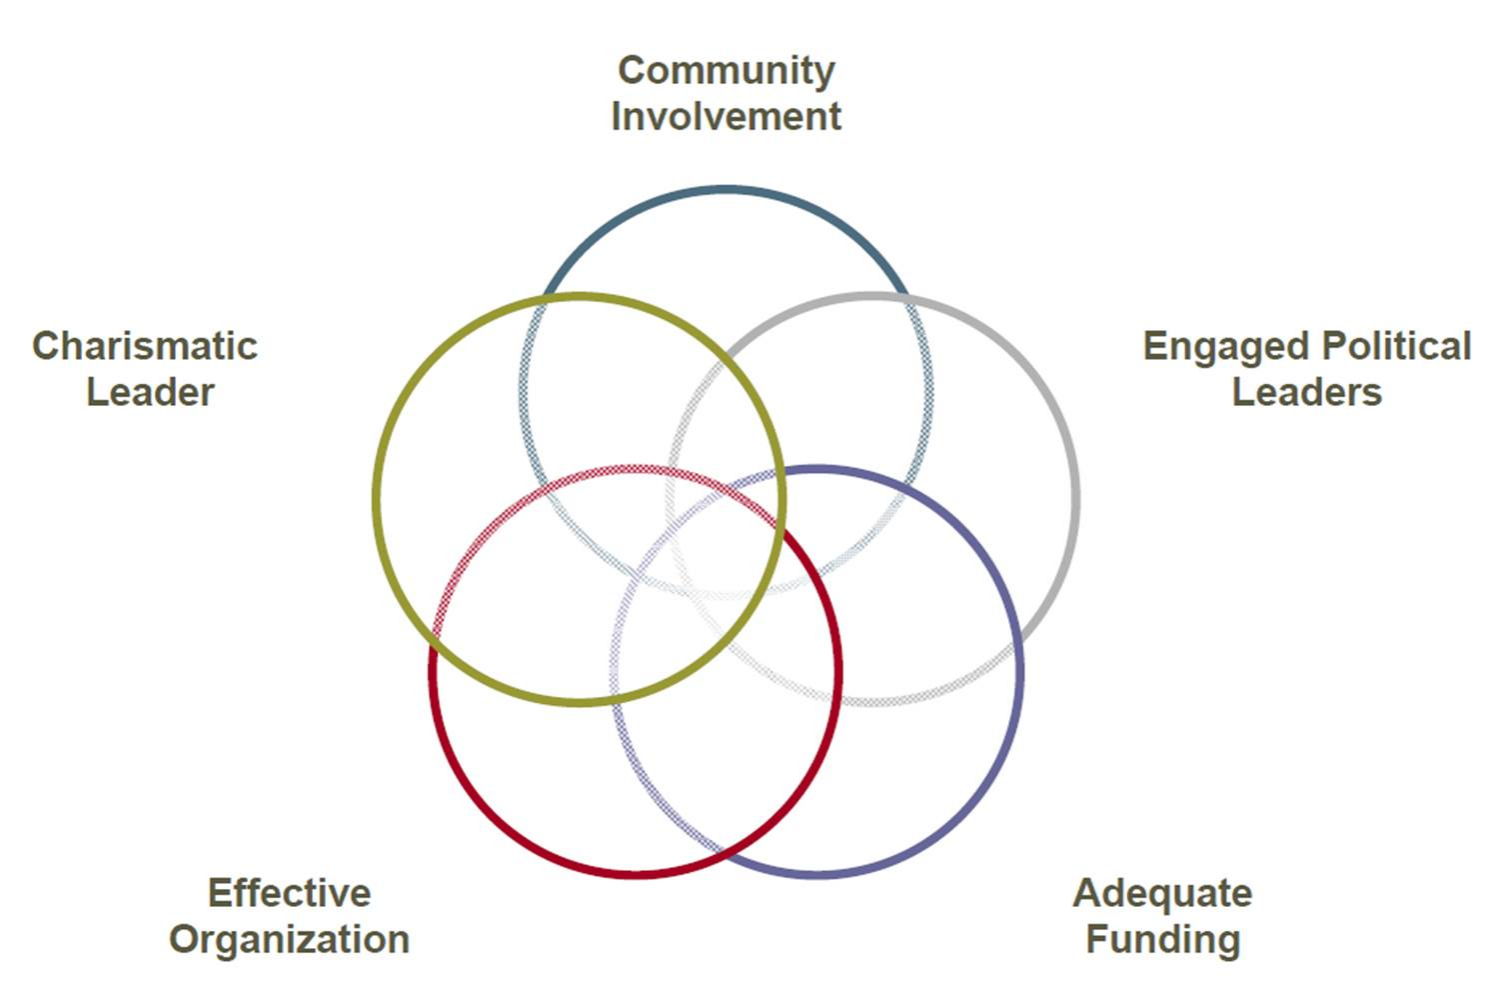 Elements for growing a rural transit system - community involvement, engaged political leaders, adequate funding, effective organizations, and a charismatic leader.